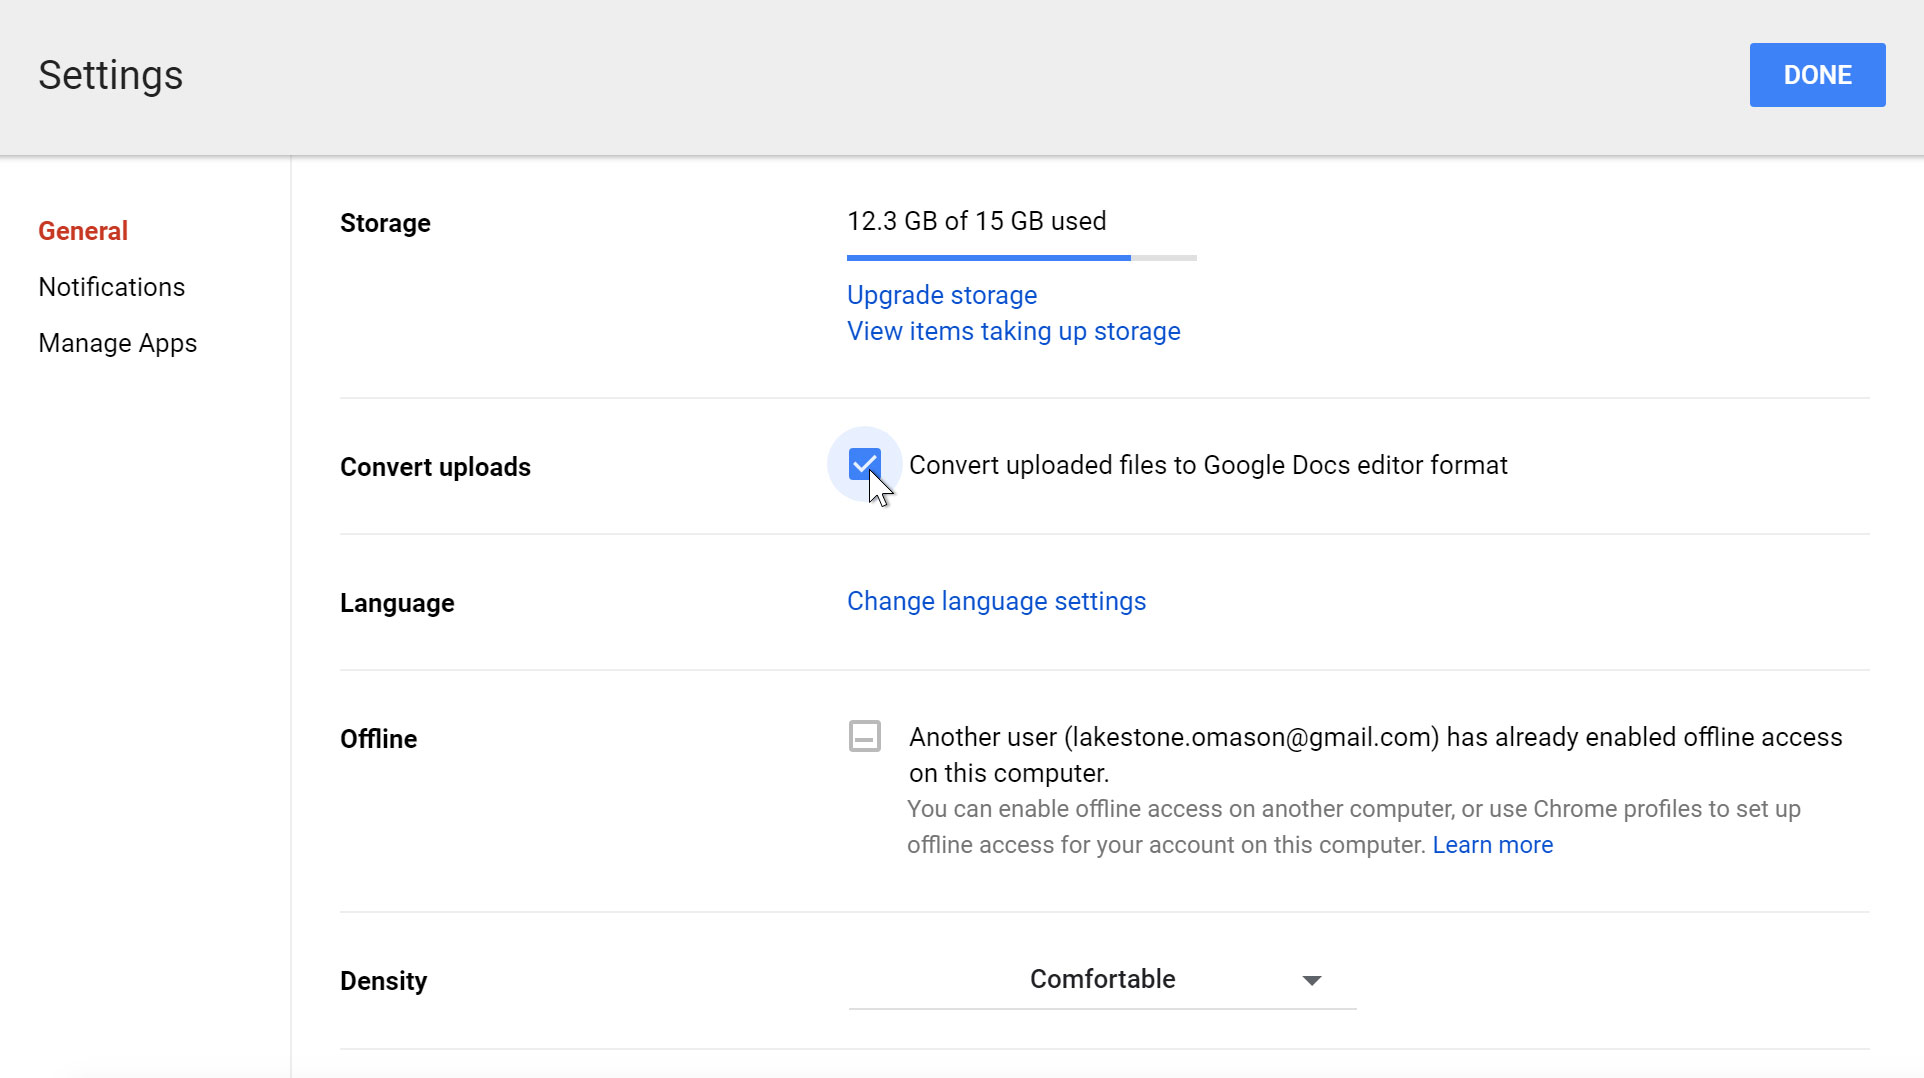 Enabling convert uploaded files in Google Drive settings